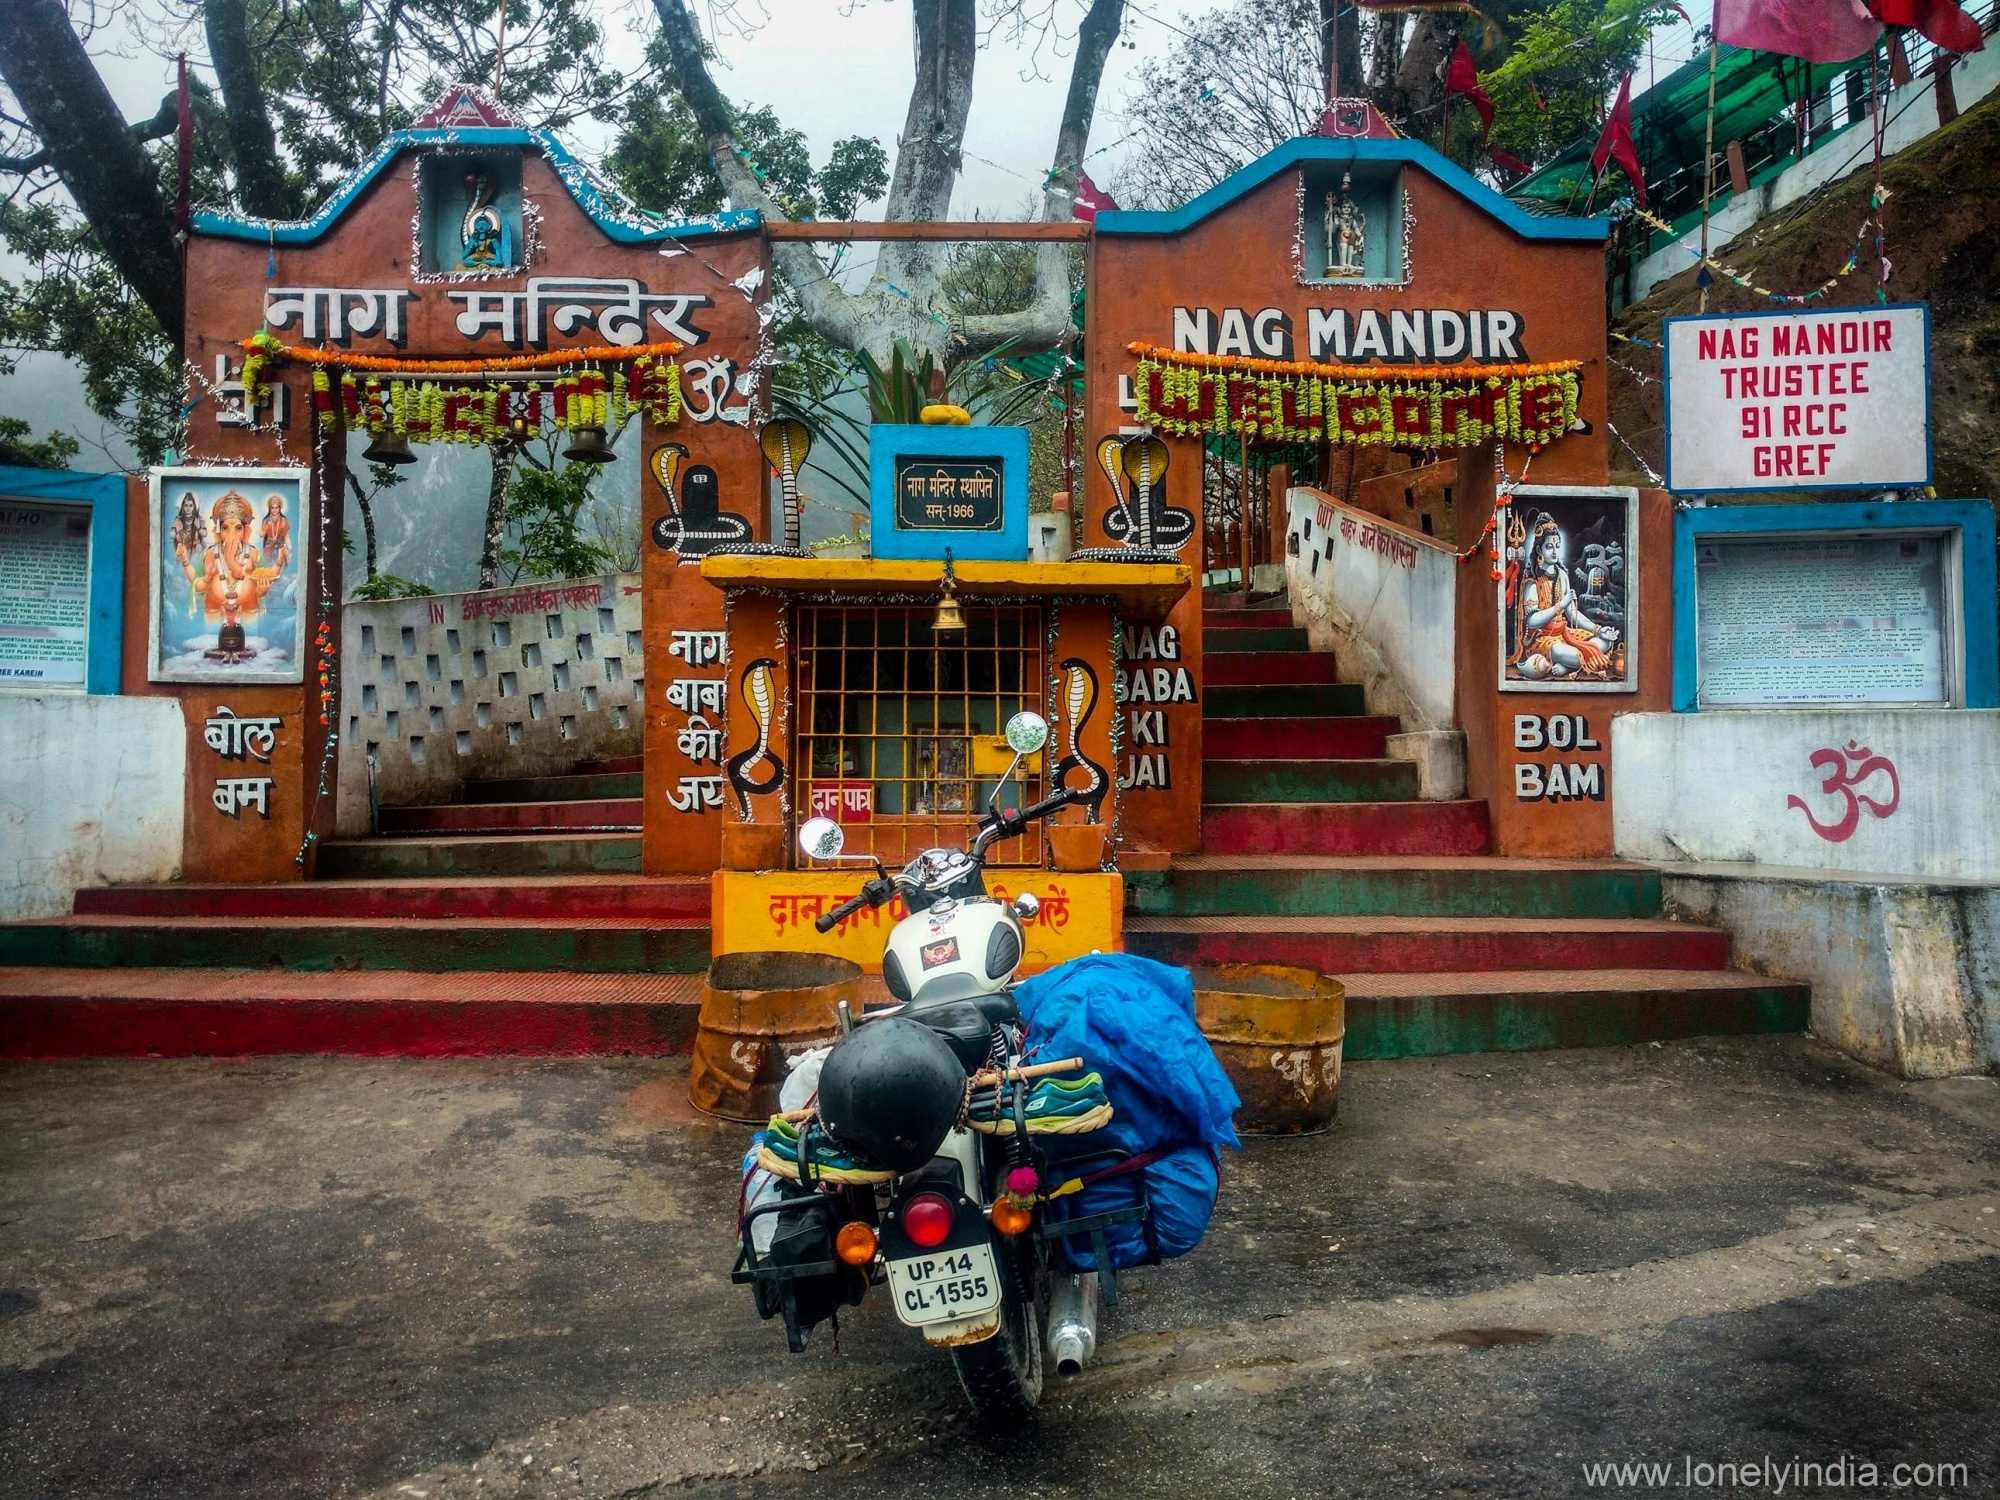 Visit to Nag Temple Arunachal Pradesh on a Royal enfield